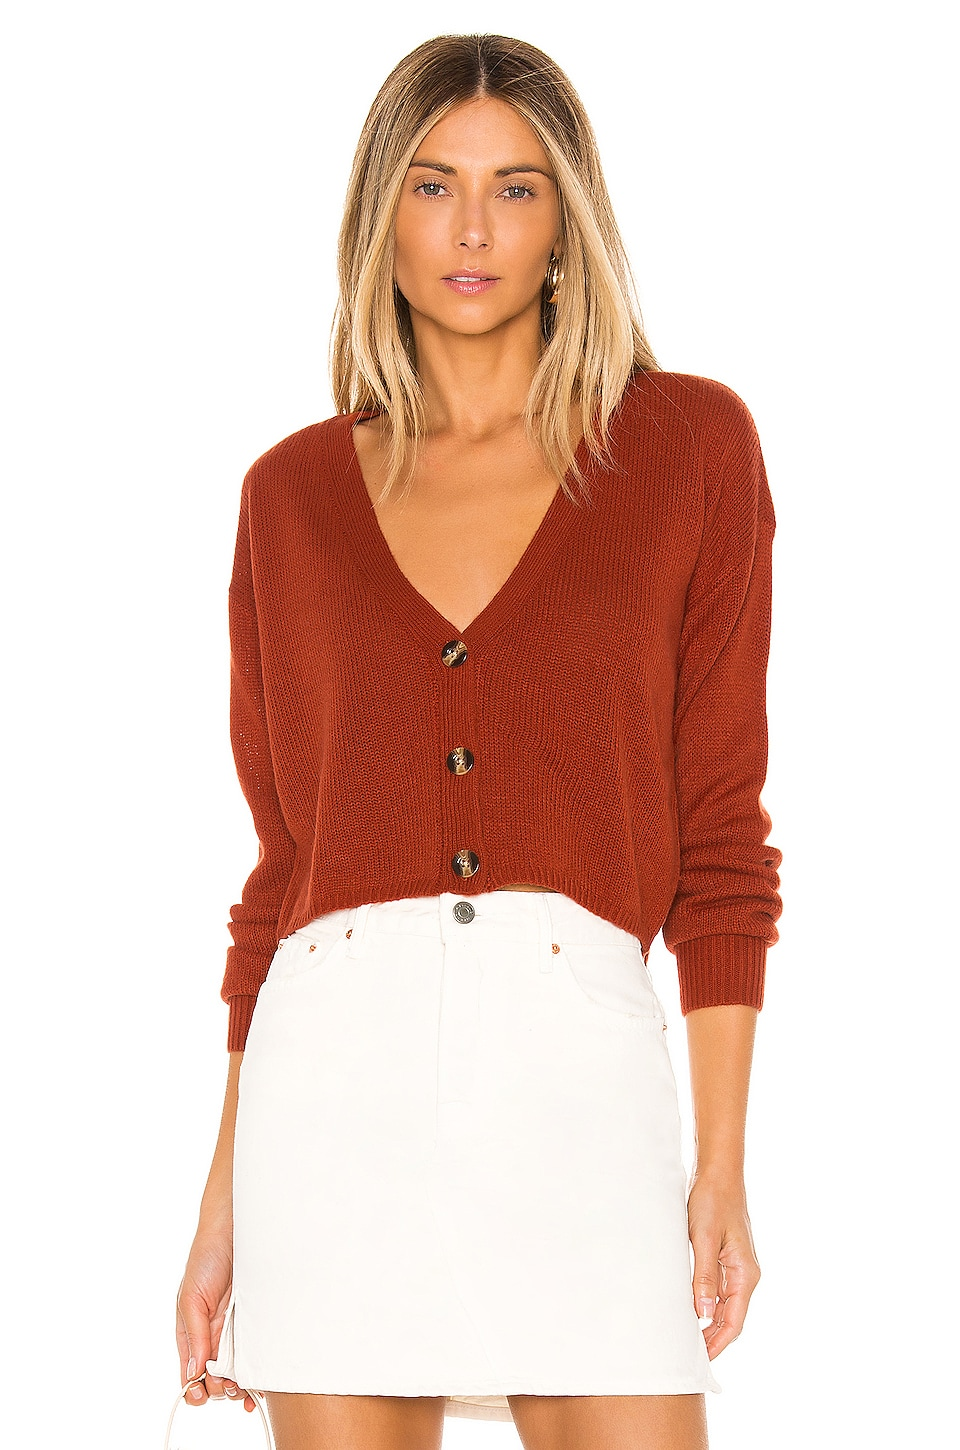 Lovers + Friends Adella Cardigan in Brick